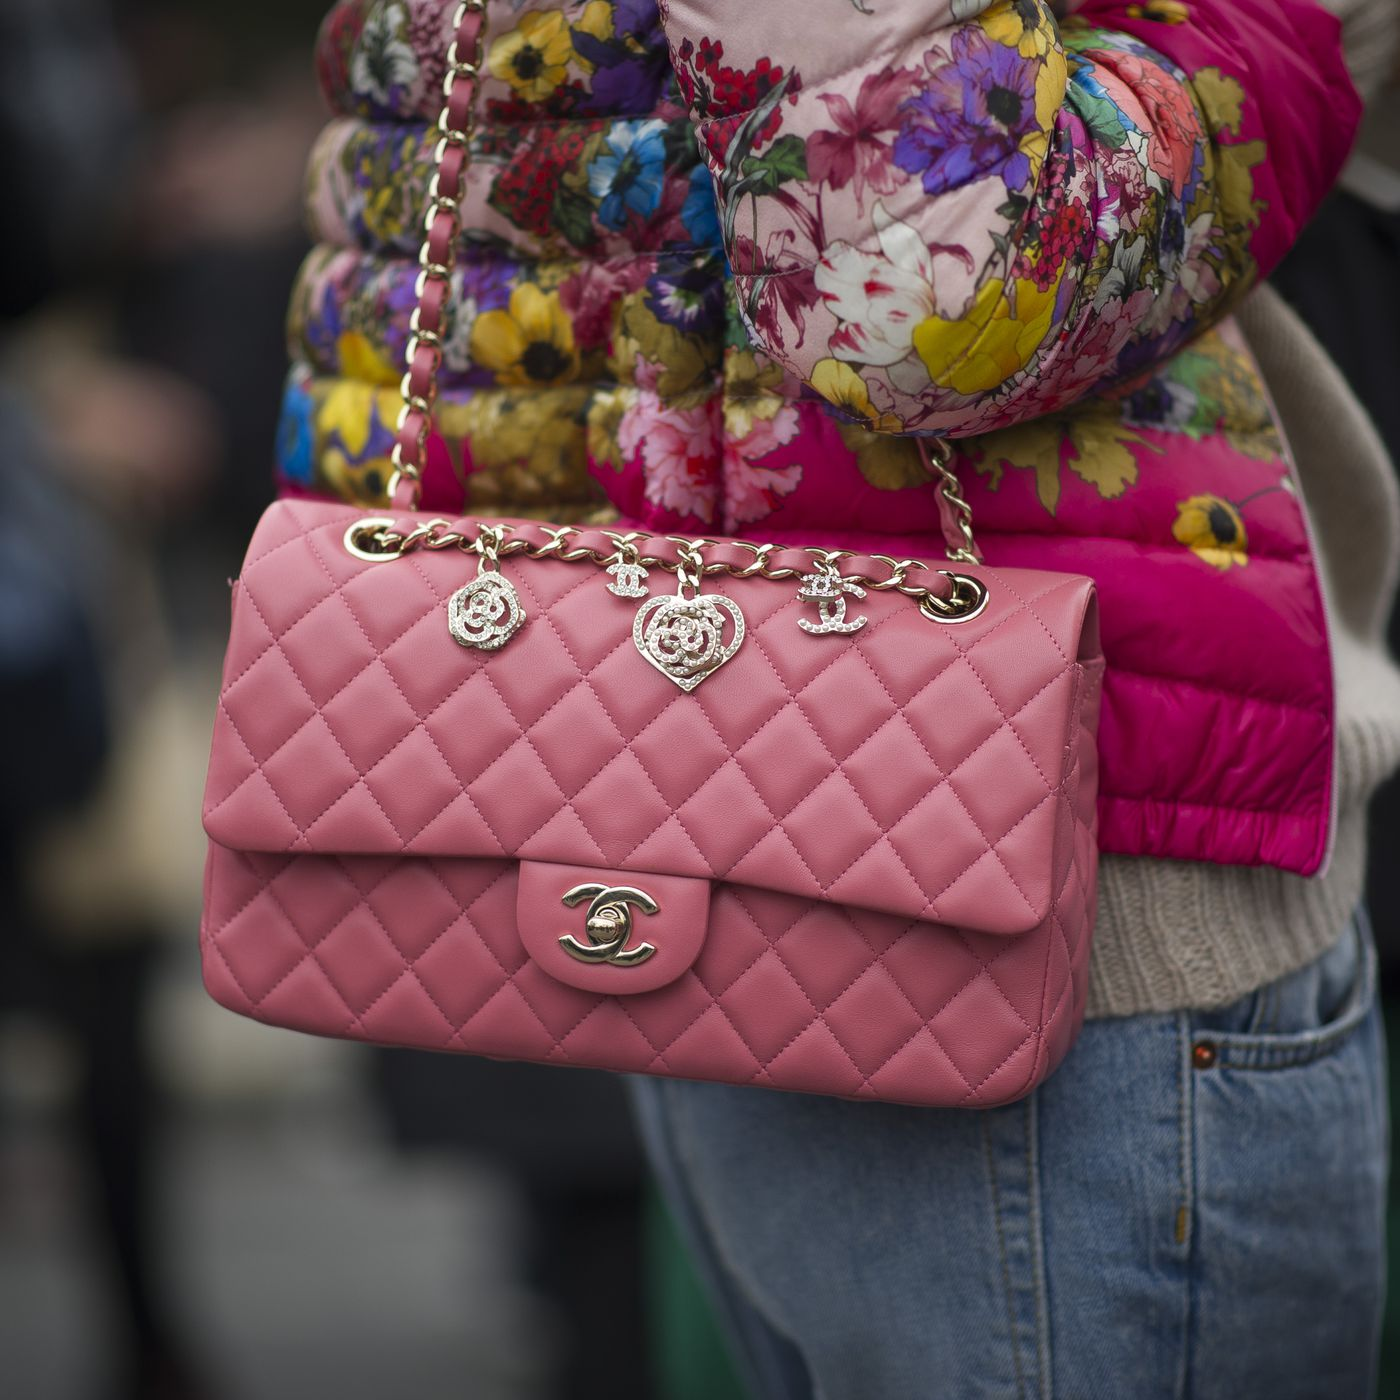 47b0c8e825e3 See How Much Chanel Bag Prices Have Skyrocketed This Decade - Racked